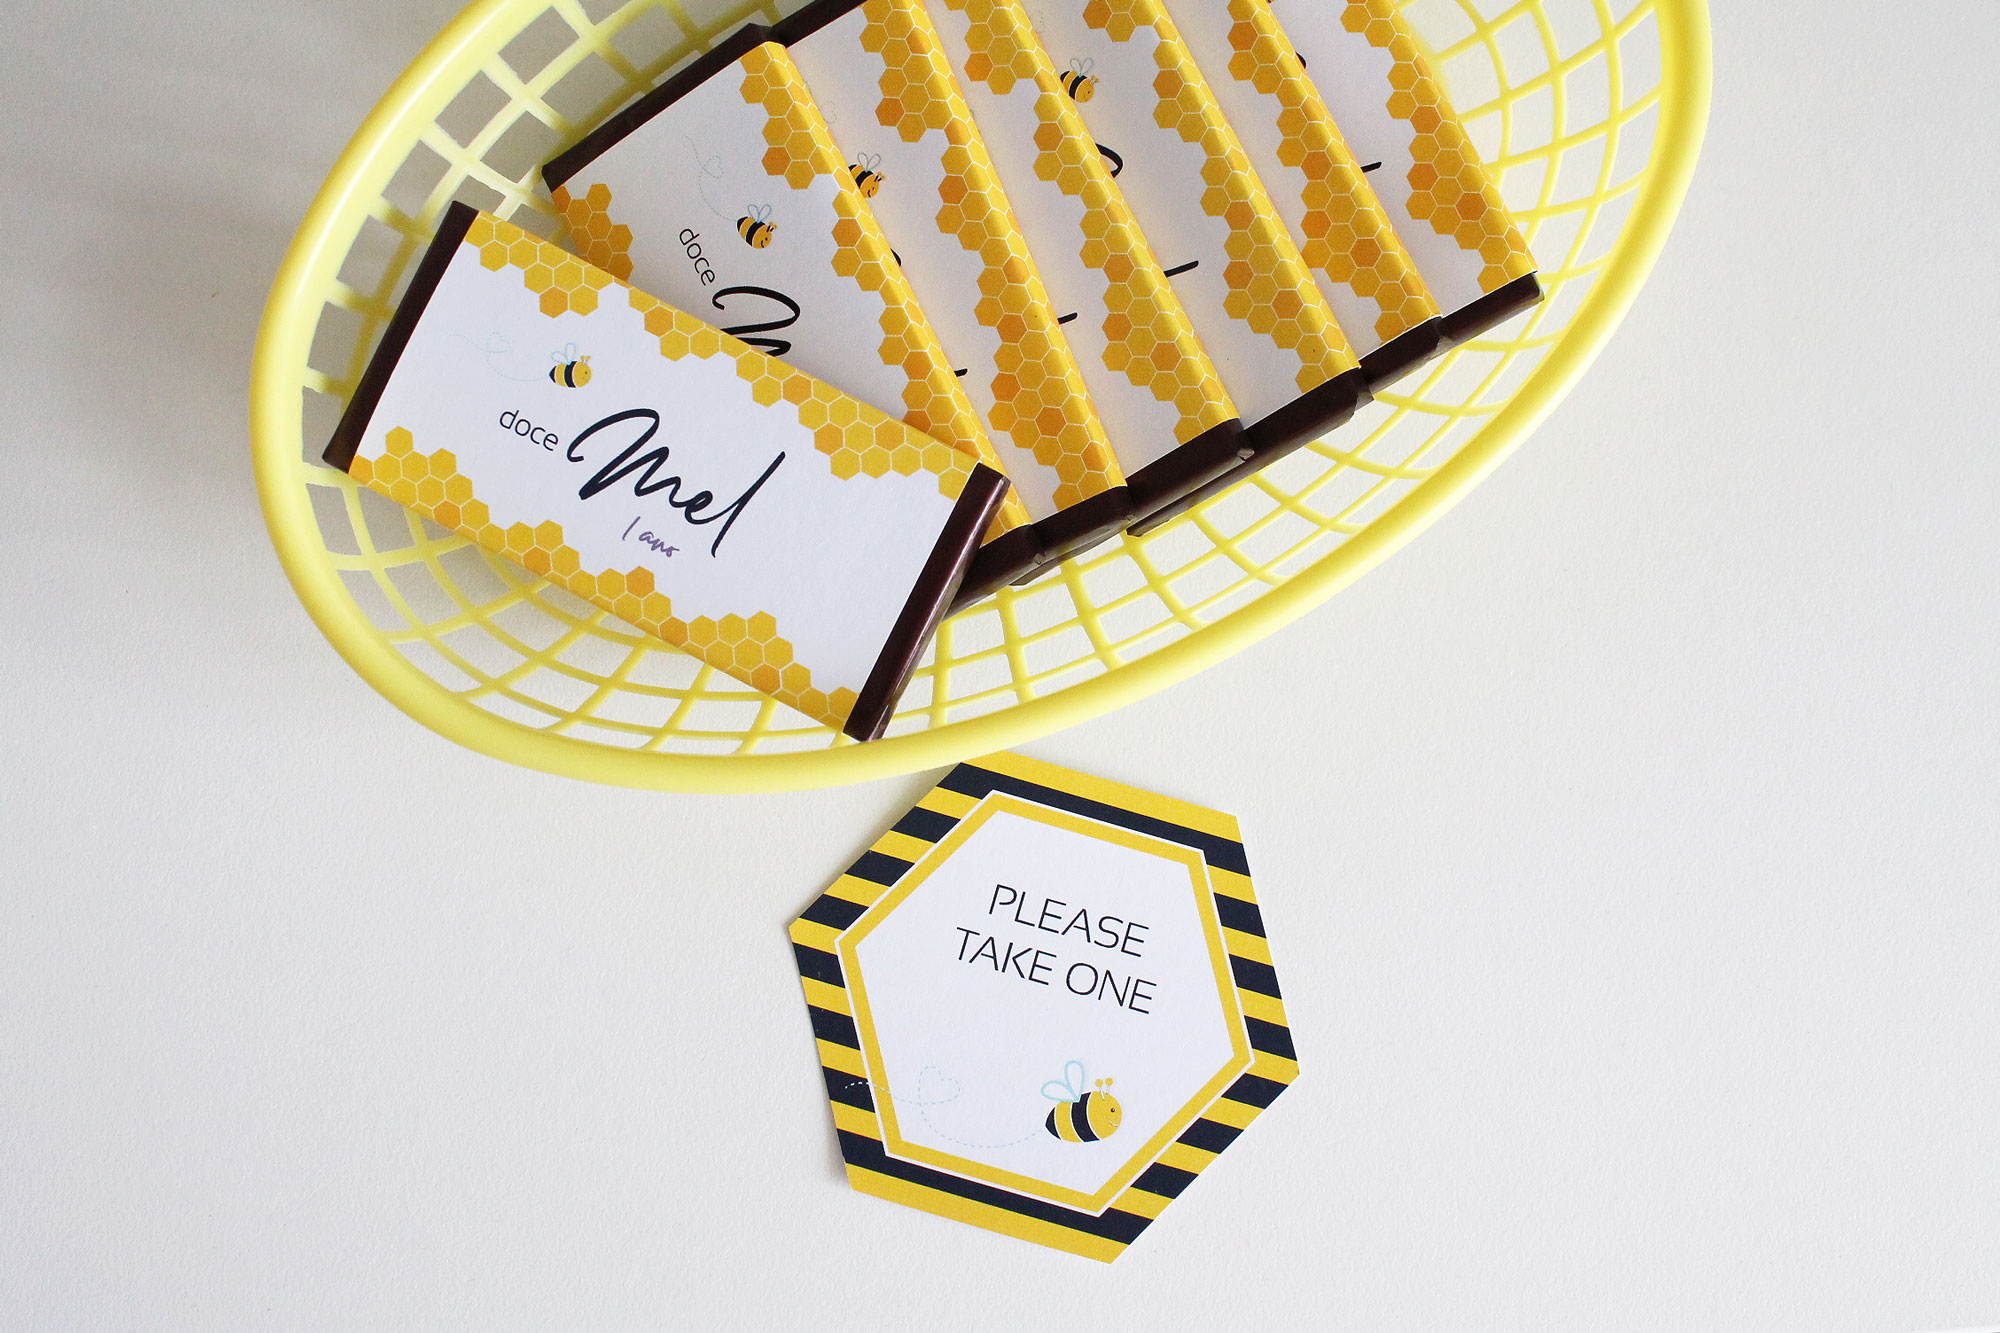 Bee Party Favors and Printable Party Decor